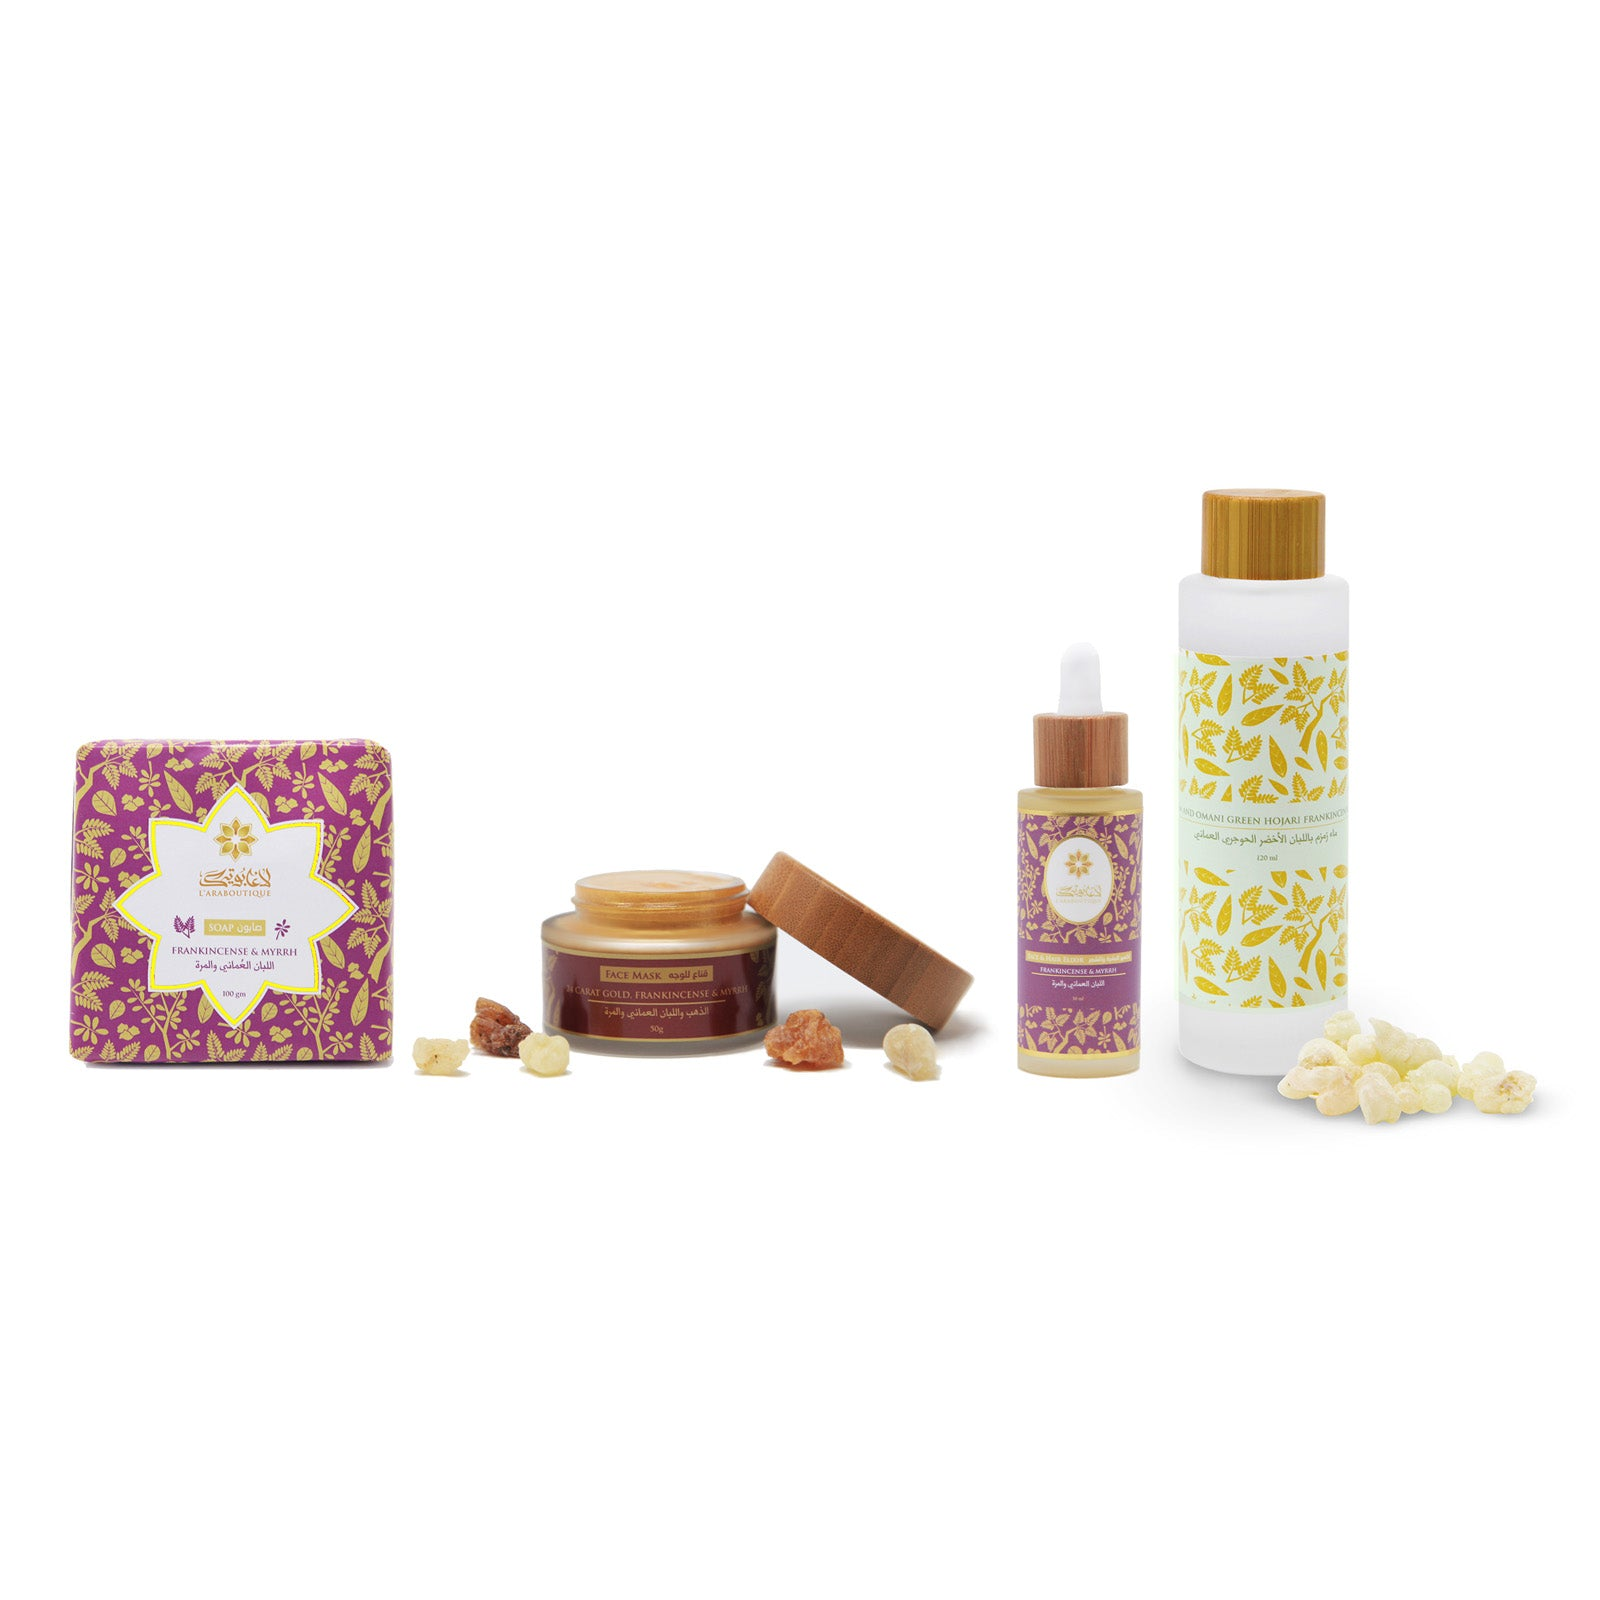 The Omani Frankincense and Myrrh Facial Kit